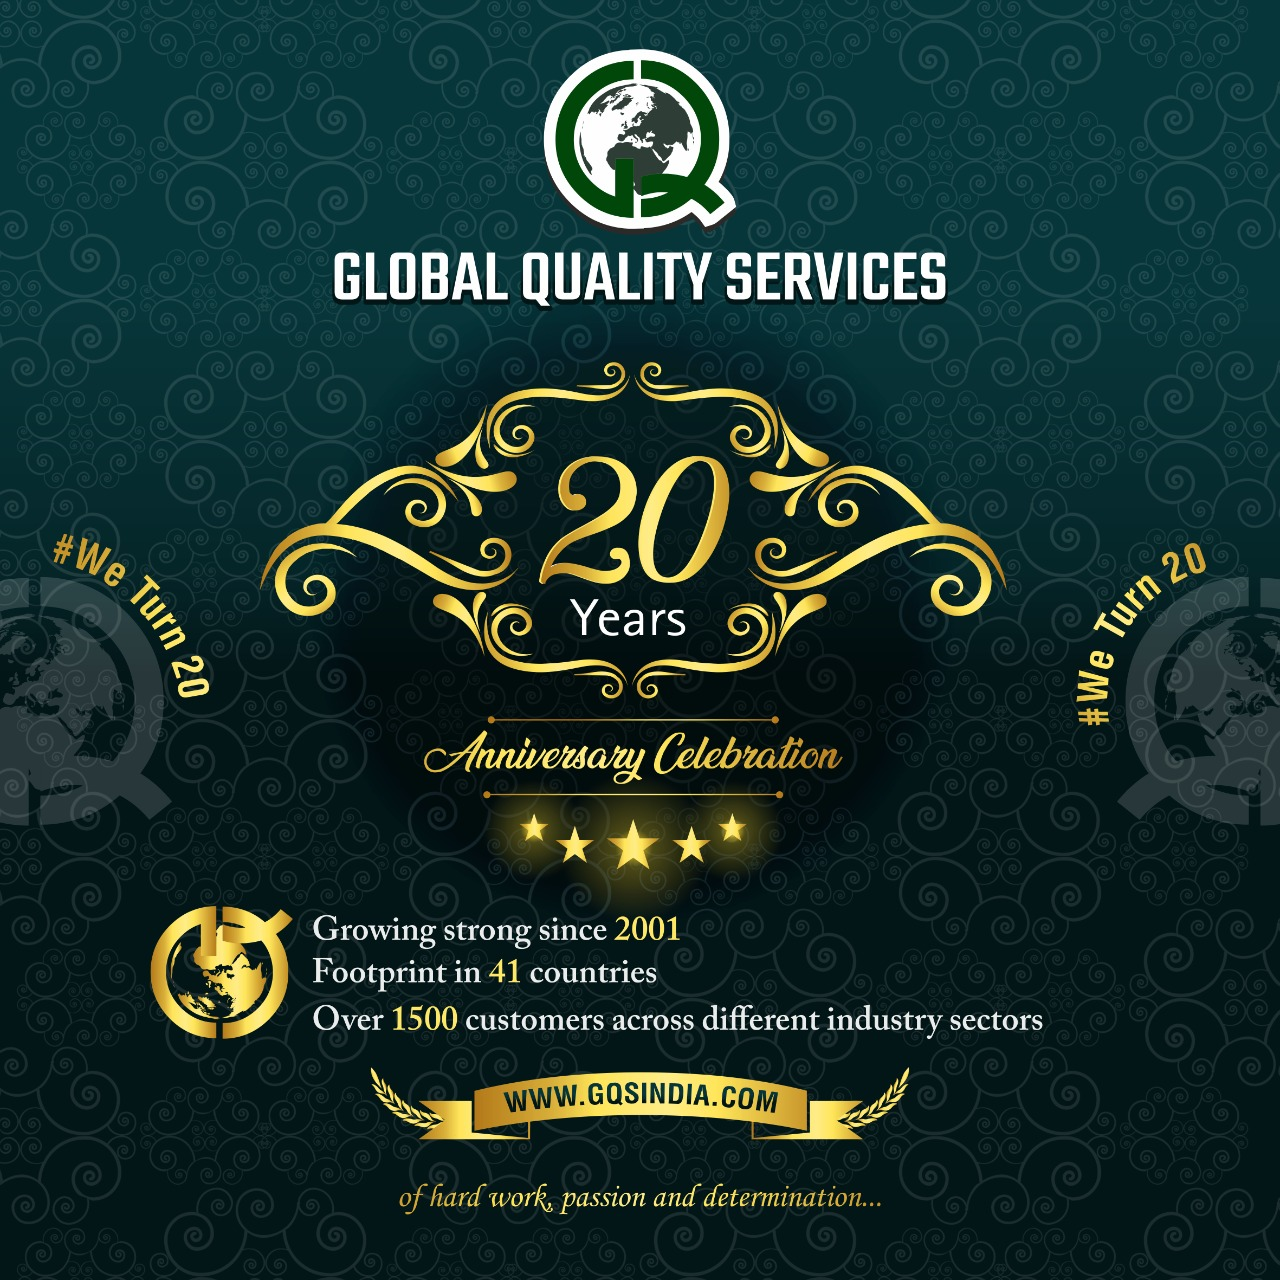 20th year anniversary celebration - Global Quality Services